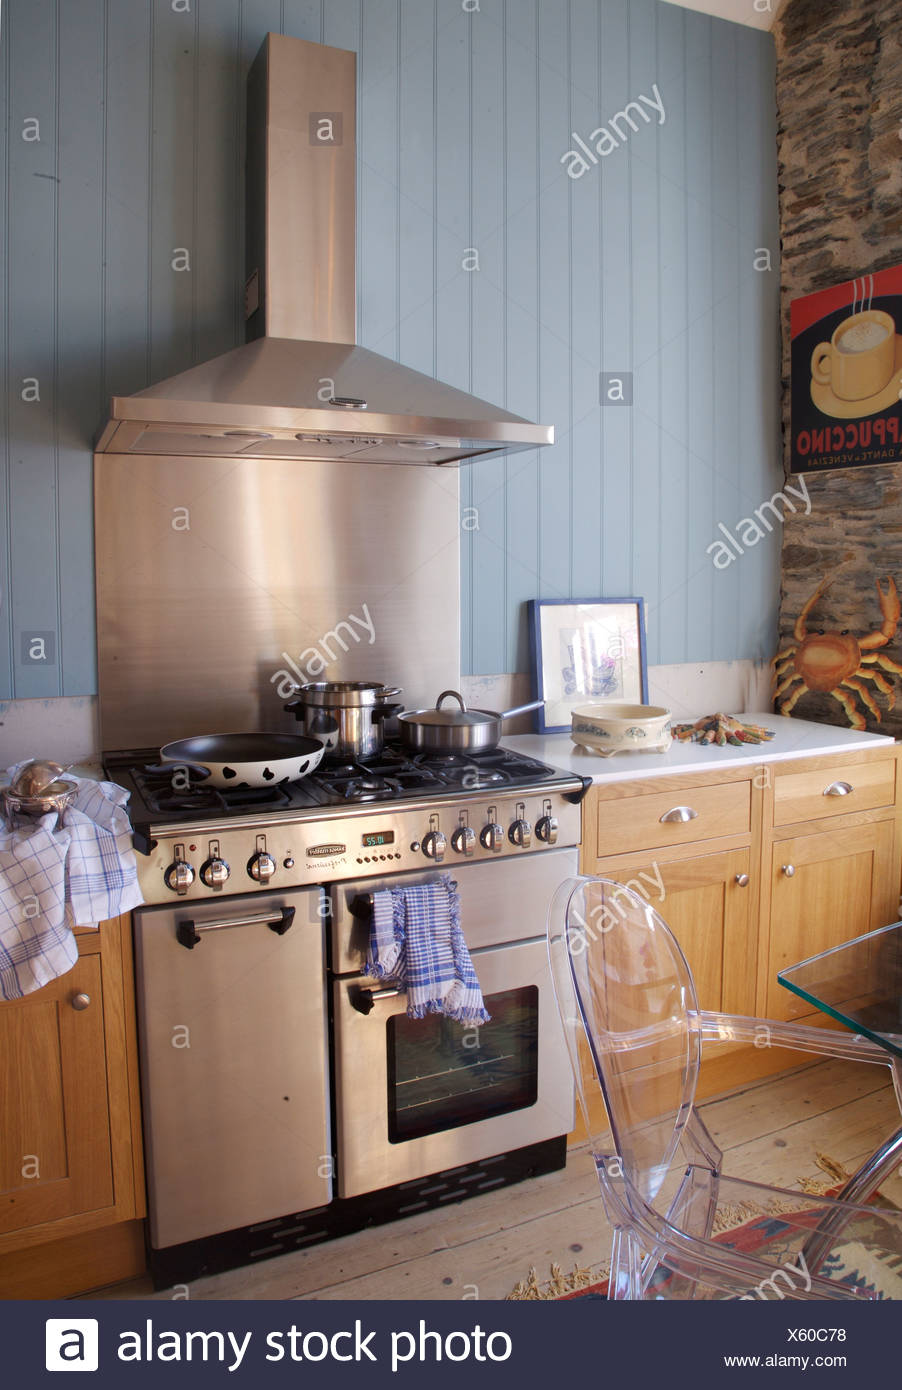 Stainless steel splash back cooker hood above range oven and cooker hood in country kitchen with blue tongue groove paneling